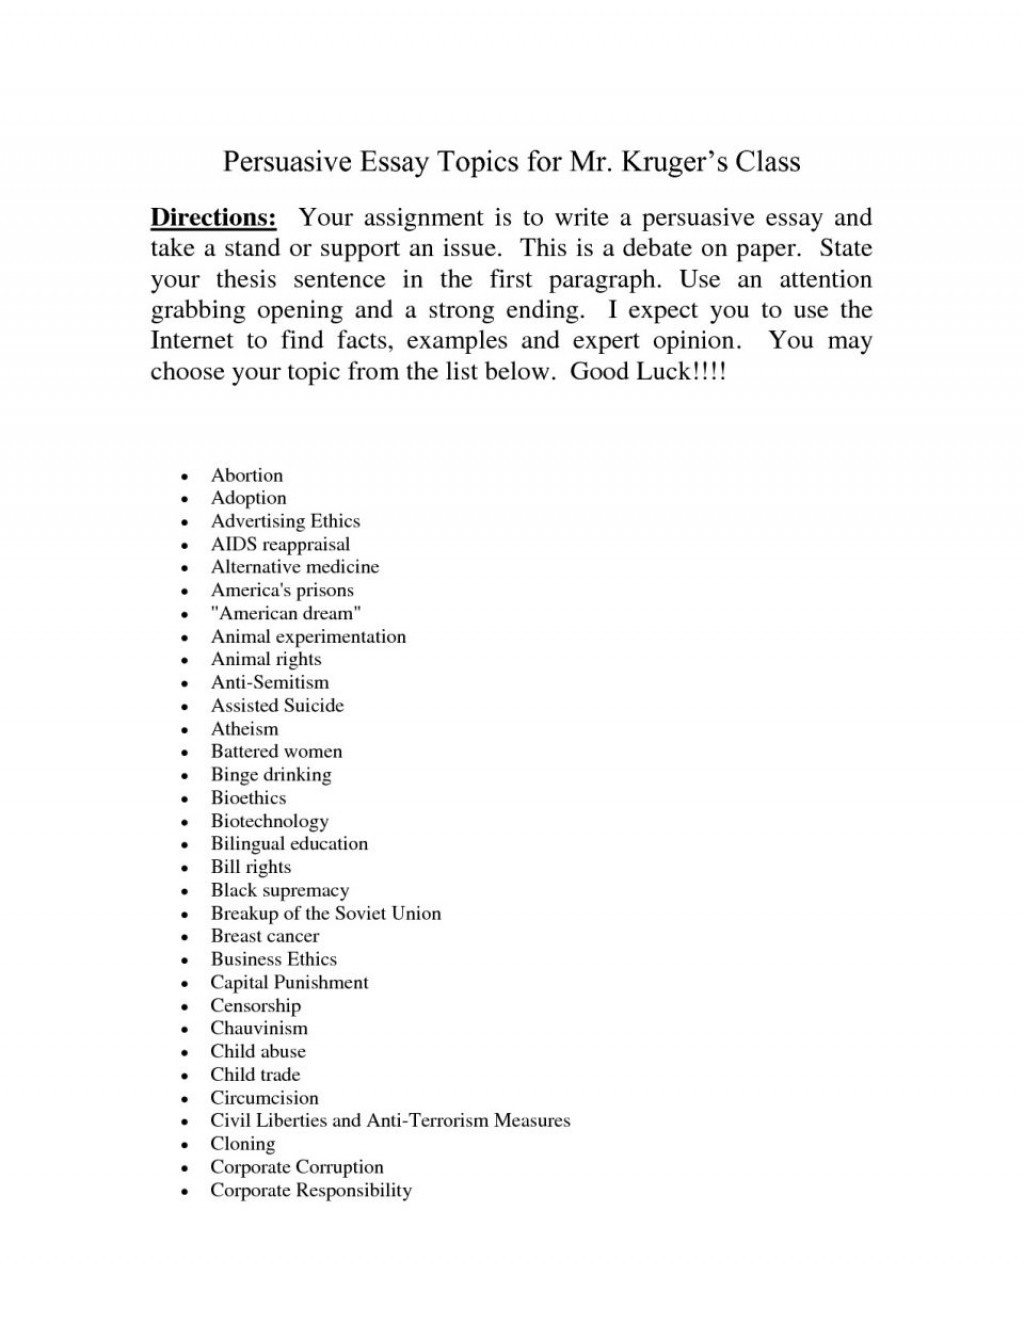 012 Research Paper Topics To Write On Topic For Essay Barca Fontanacountryinn Within Good Persuasive Narrative Abo Easy About Personal Descriptive Fearsome A Fun History Large